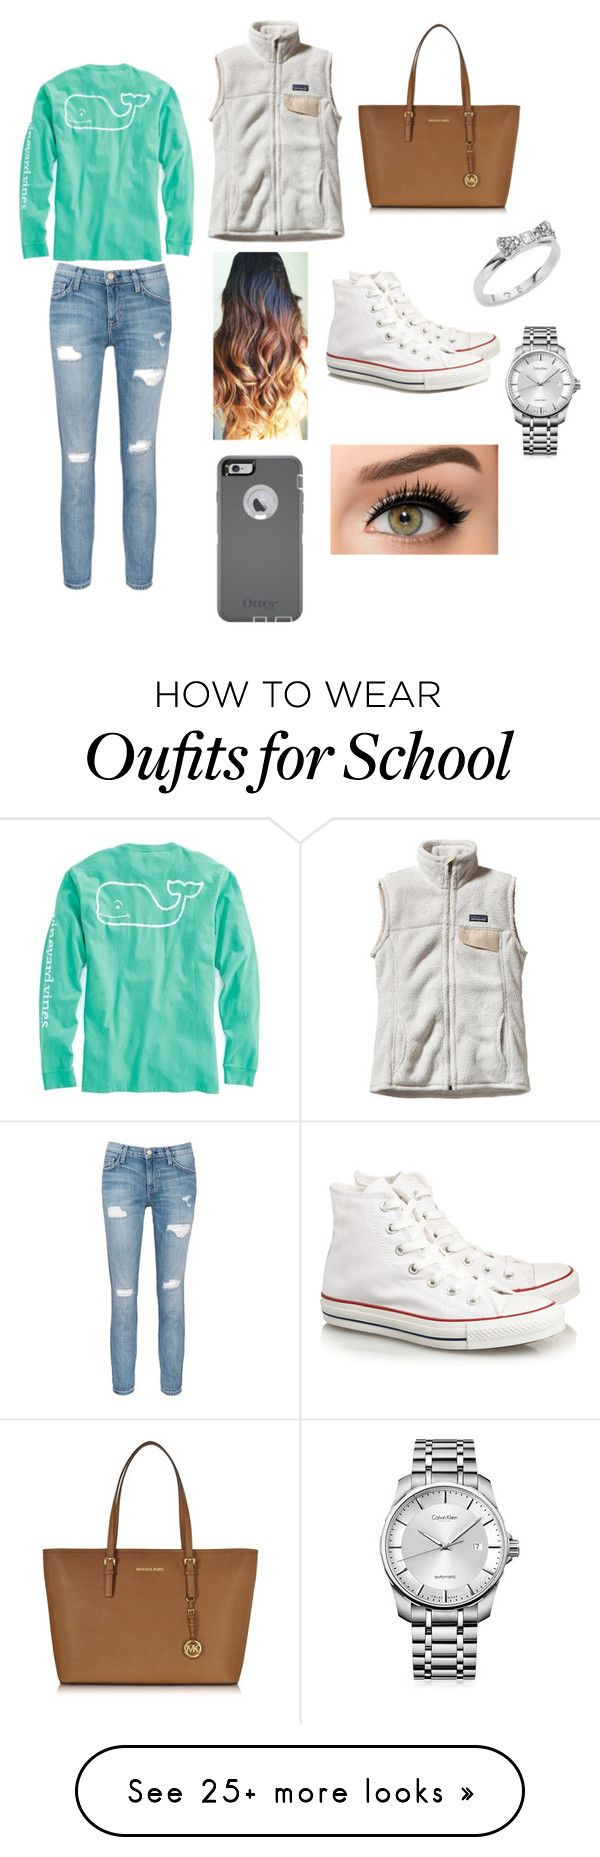 """School day ♡"" by gracie-norfleet on Polyvore featuring Patagonia, Vineyard Vines, Current/Elliott, Converse, Michael Kors, OtterBox, Kate Spade and Calvin Klein"